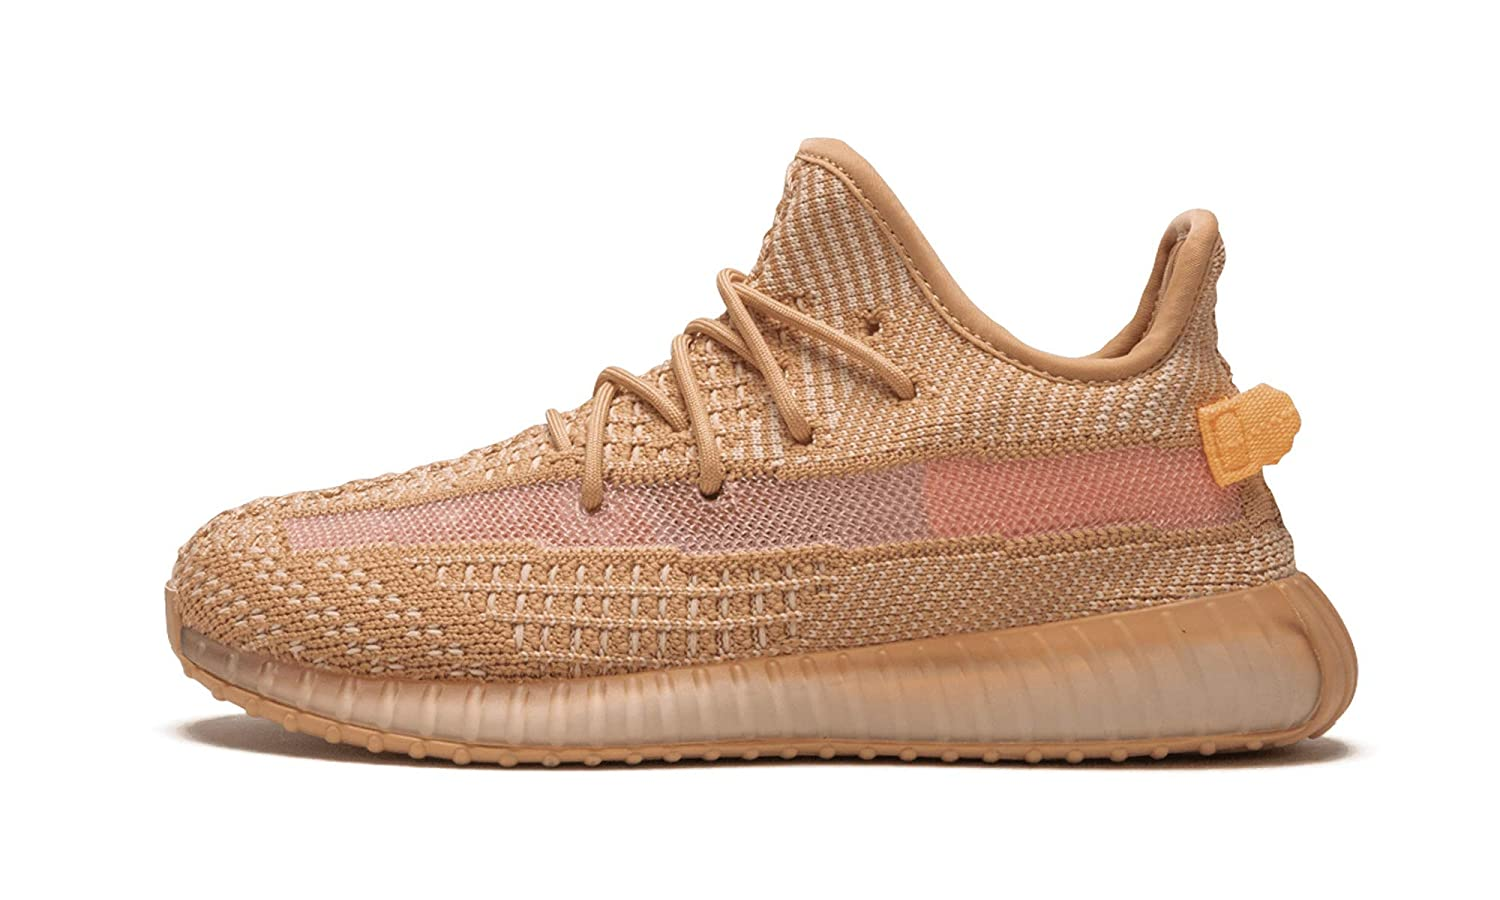 Adidas Yeezy Boost 350 V2 'Clay' (Ps) Us 1